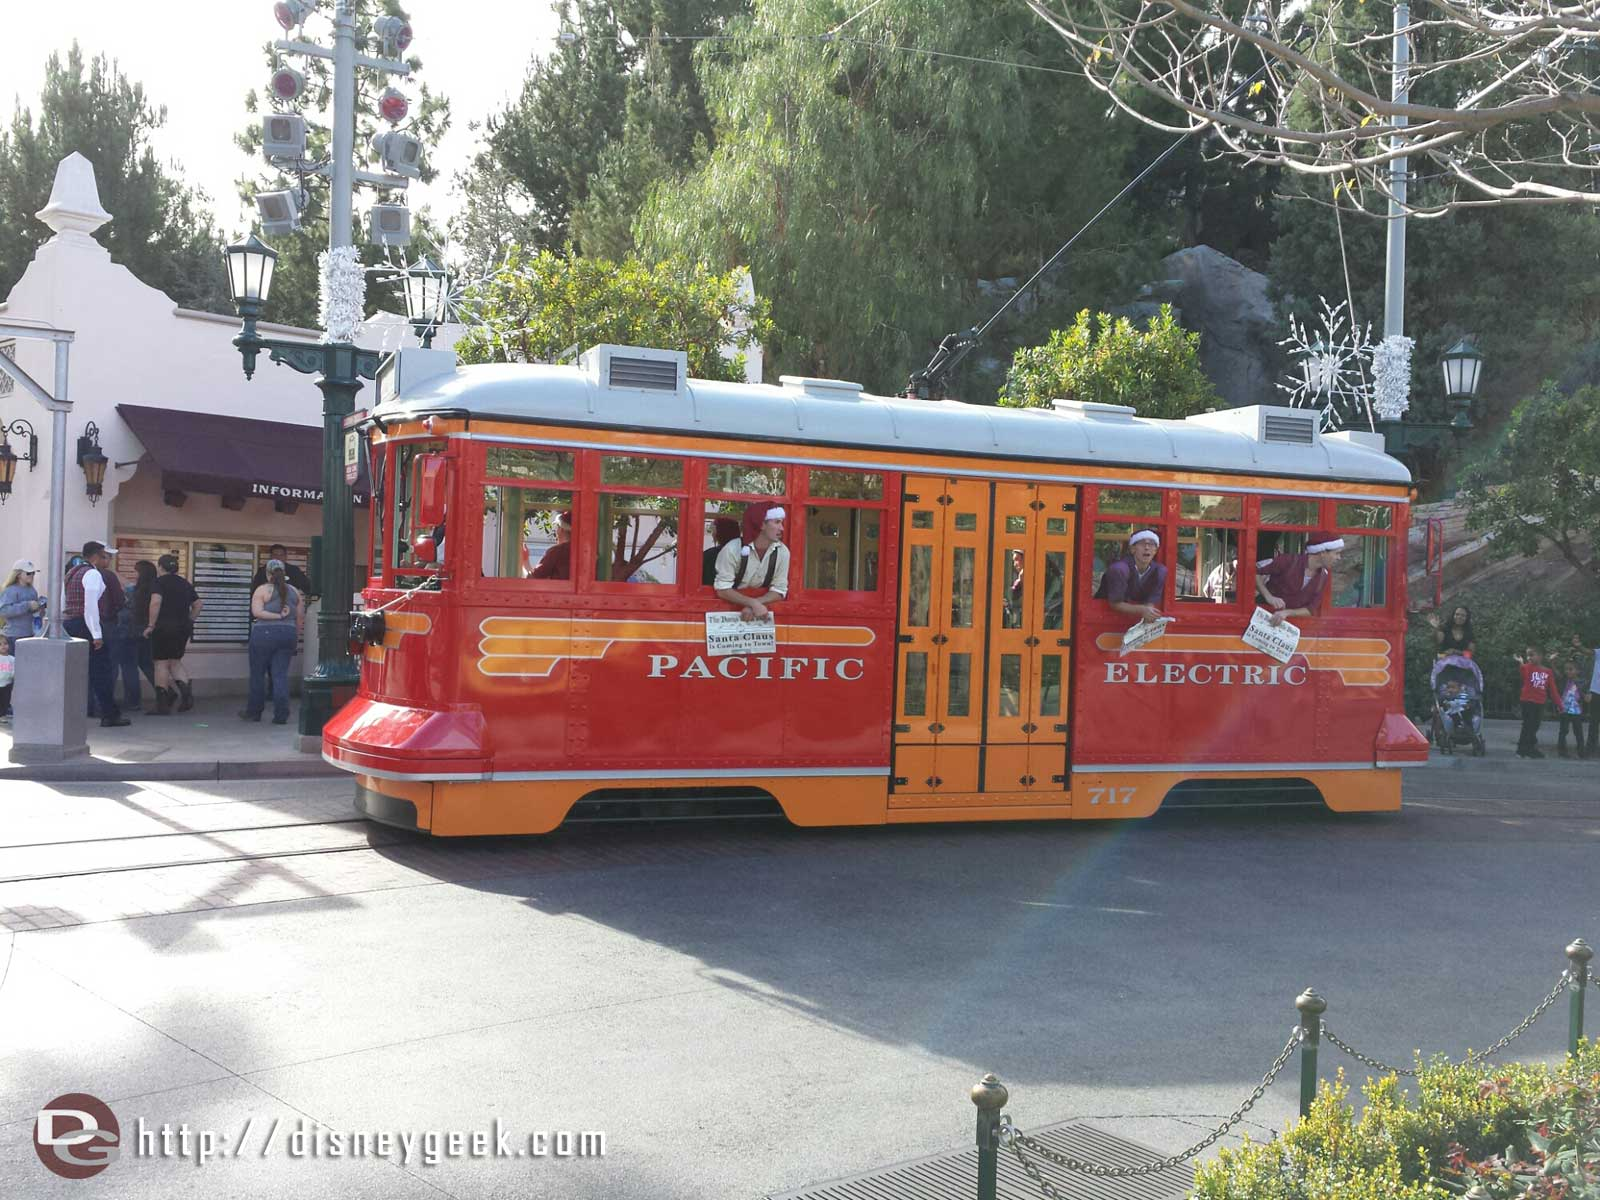 A Red Car Trolley Sleigh crossing my path #BuenaVistaStreet